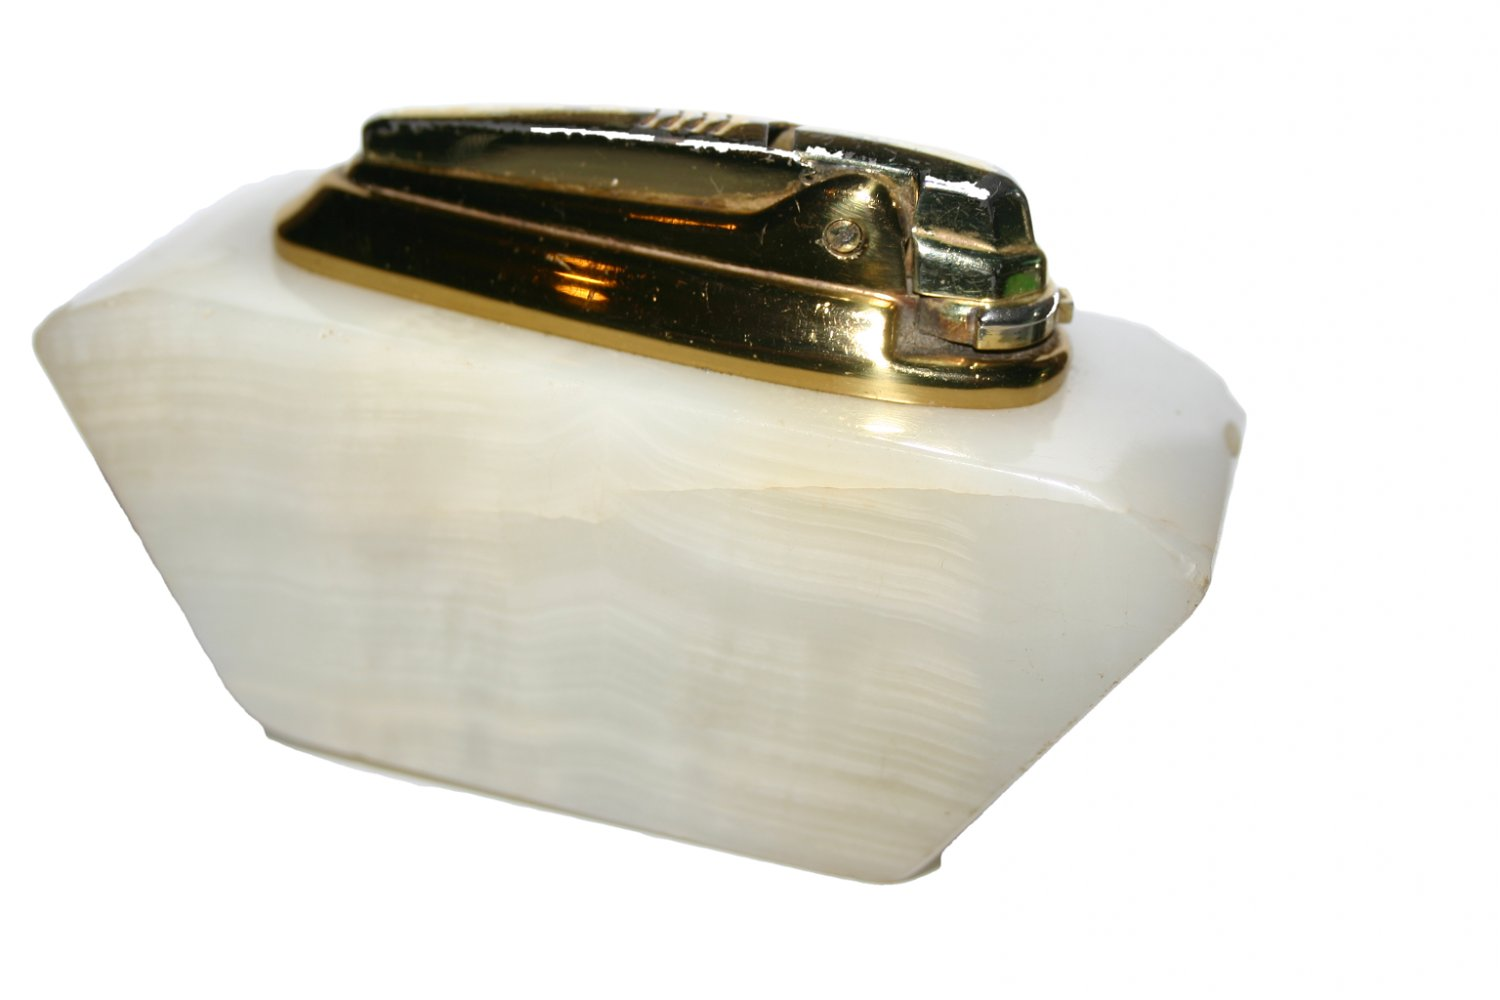 Ronson Varaflame Onyx Vintage 1964 Gas Table Lighter Collectors Item